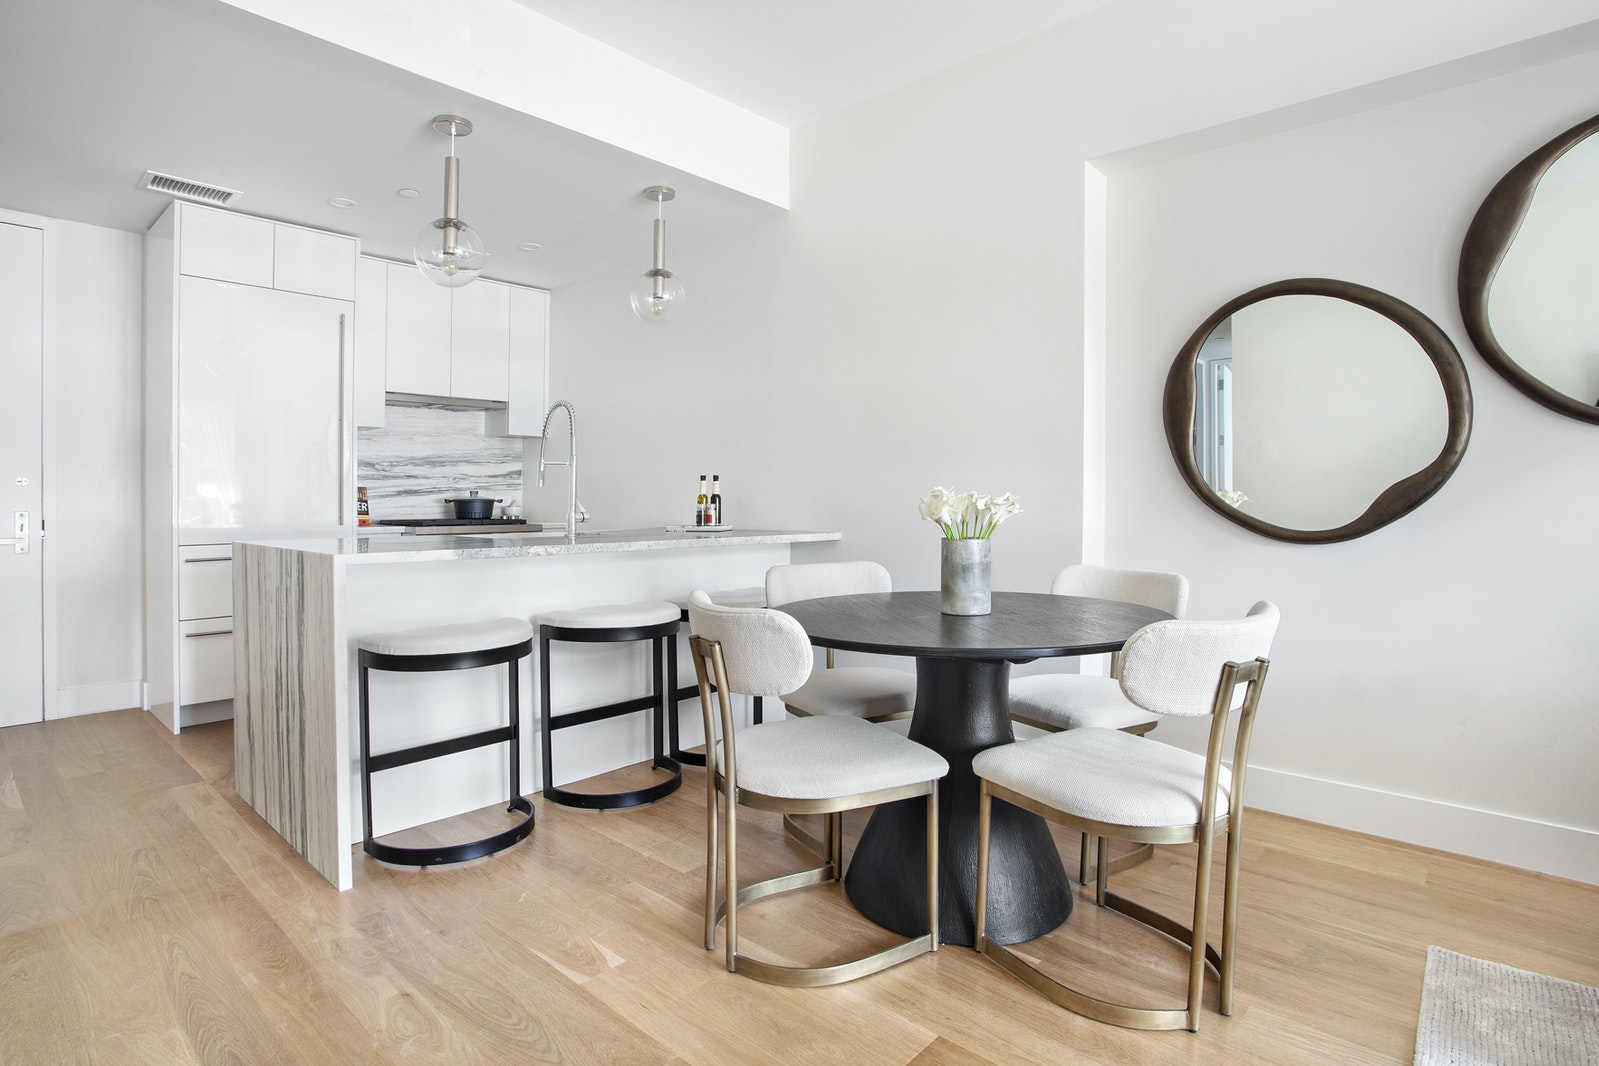 427 East 90th Street 5b, Upper East Side, NYC, 10128, $2,995,000, Property For Sale, Halstead Real Estate, Photo 2